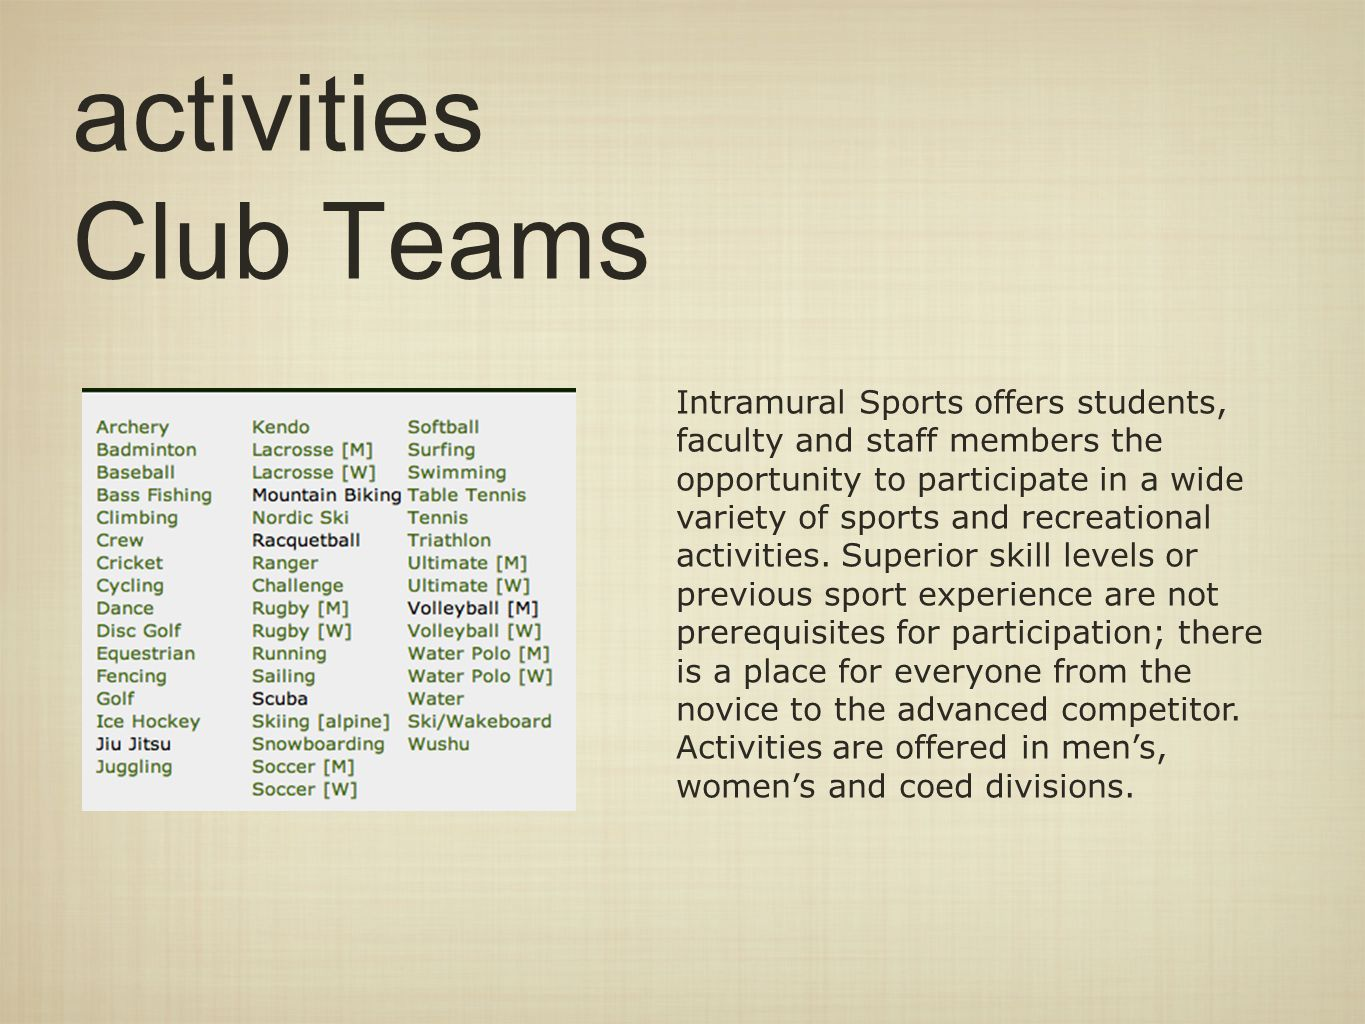 activities Club Teams Intramural Sports offers students, faculty and staff members the opportunity to participate in a wide variety of sports and recr